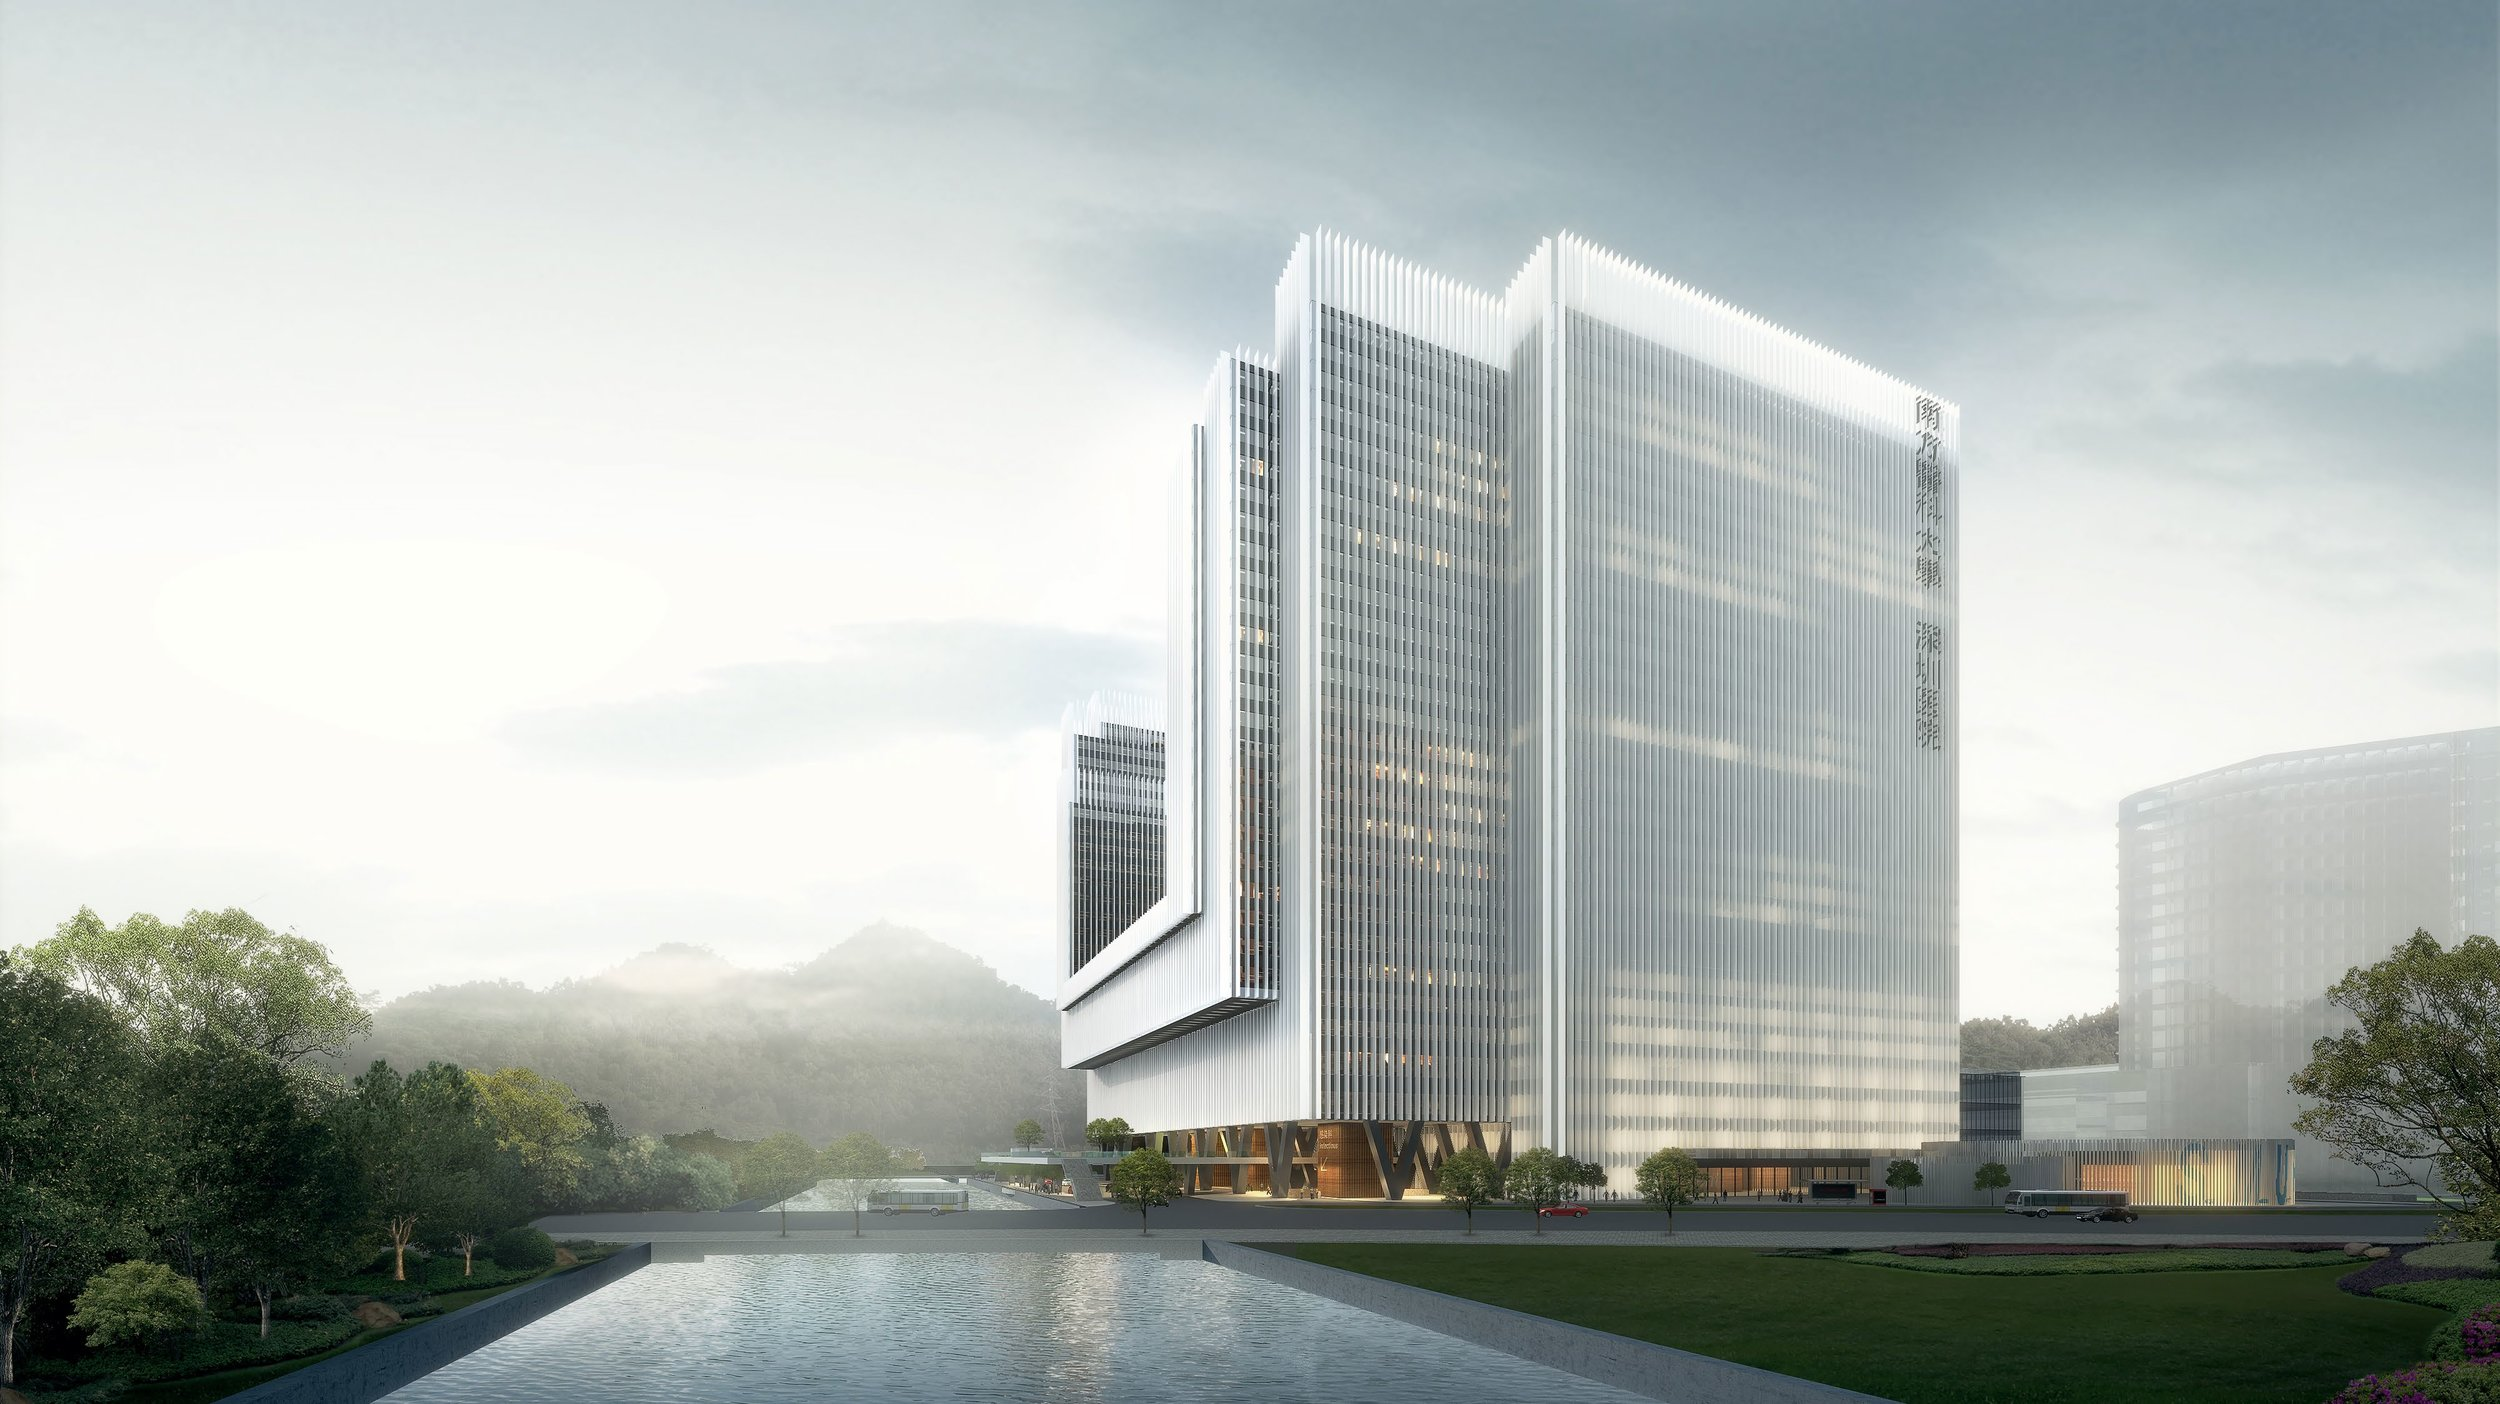 The Second phase of the Shenzhen Hospital of Southern Medical University